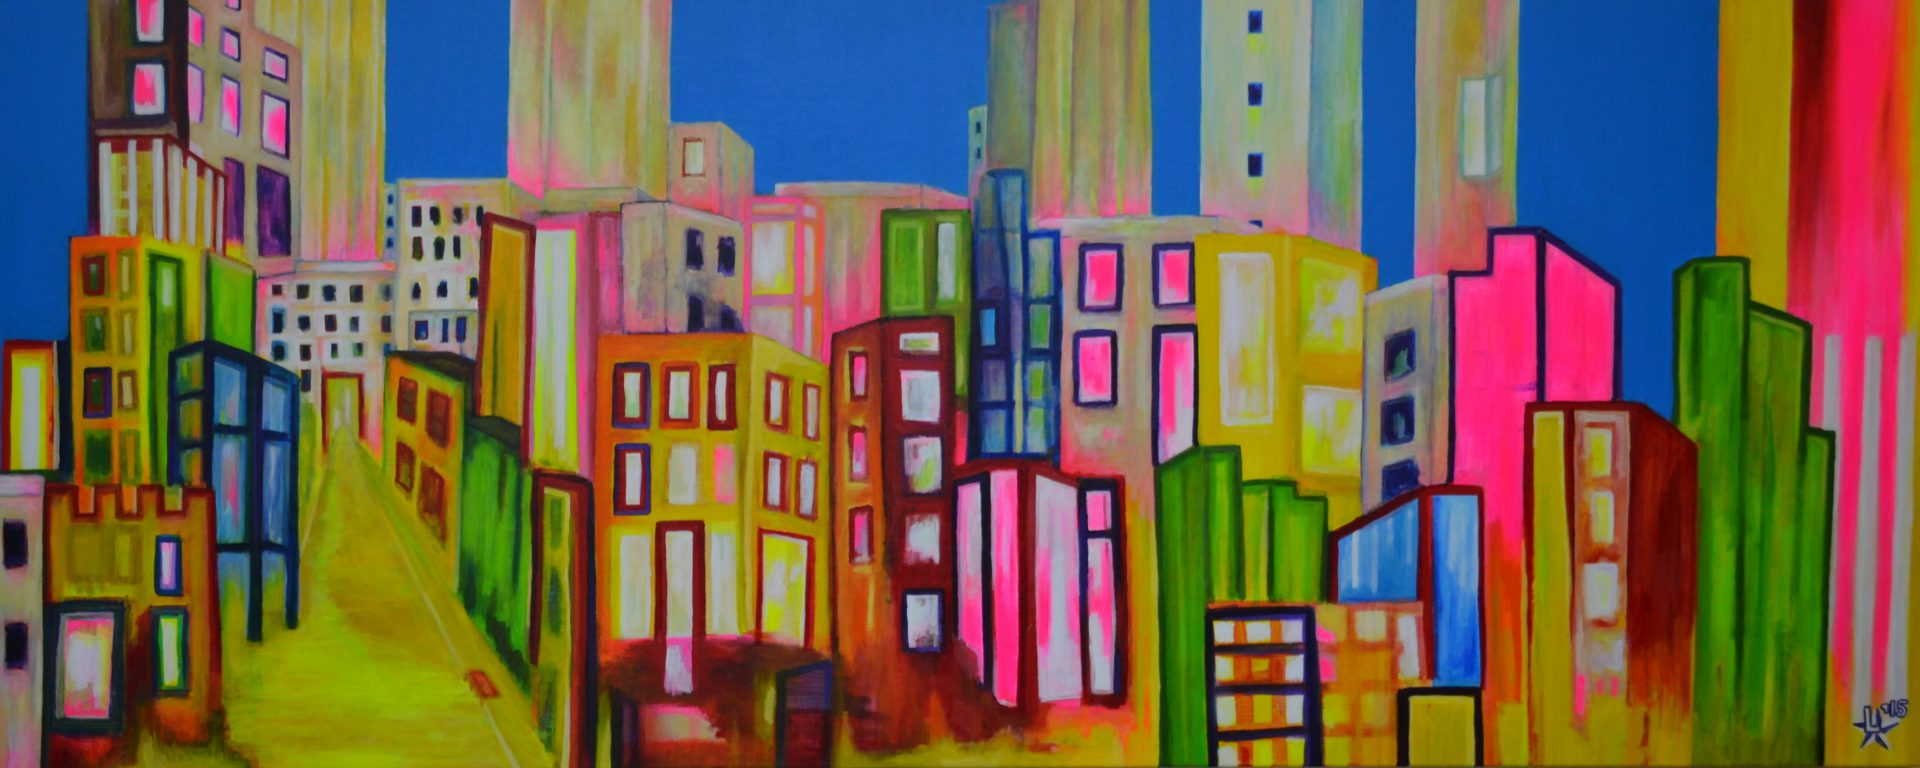 kunstenaar utrecht kunst ltuziasm l-tuziasm schilderij art artist painting urban landscape city trippin pop up jungle